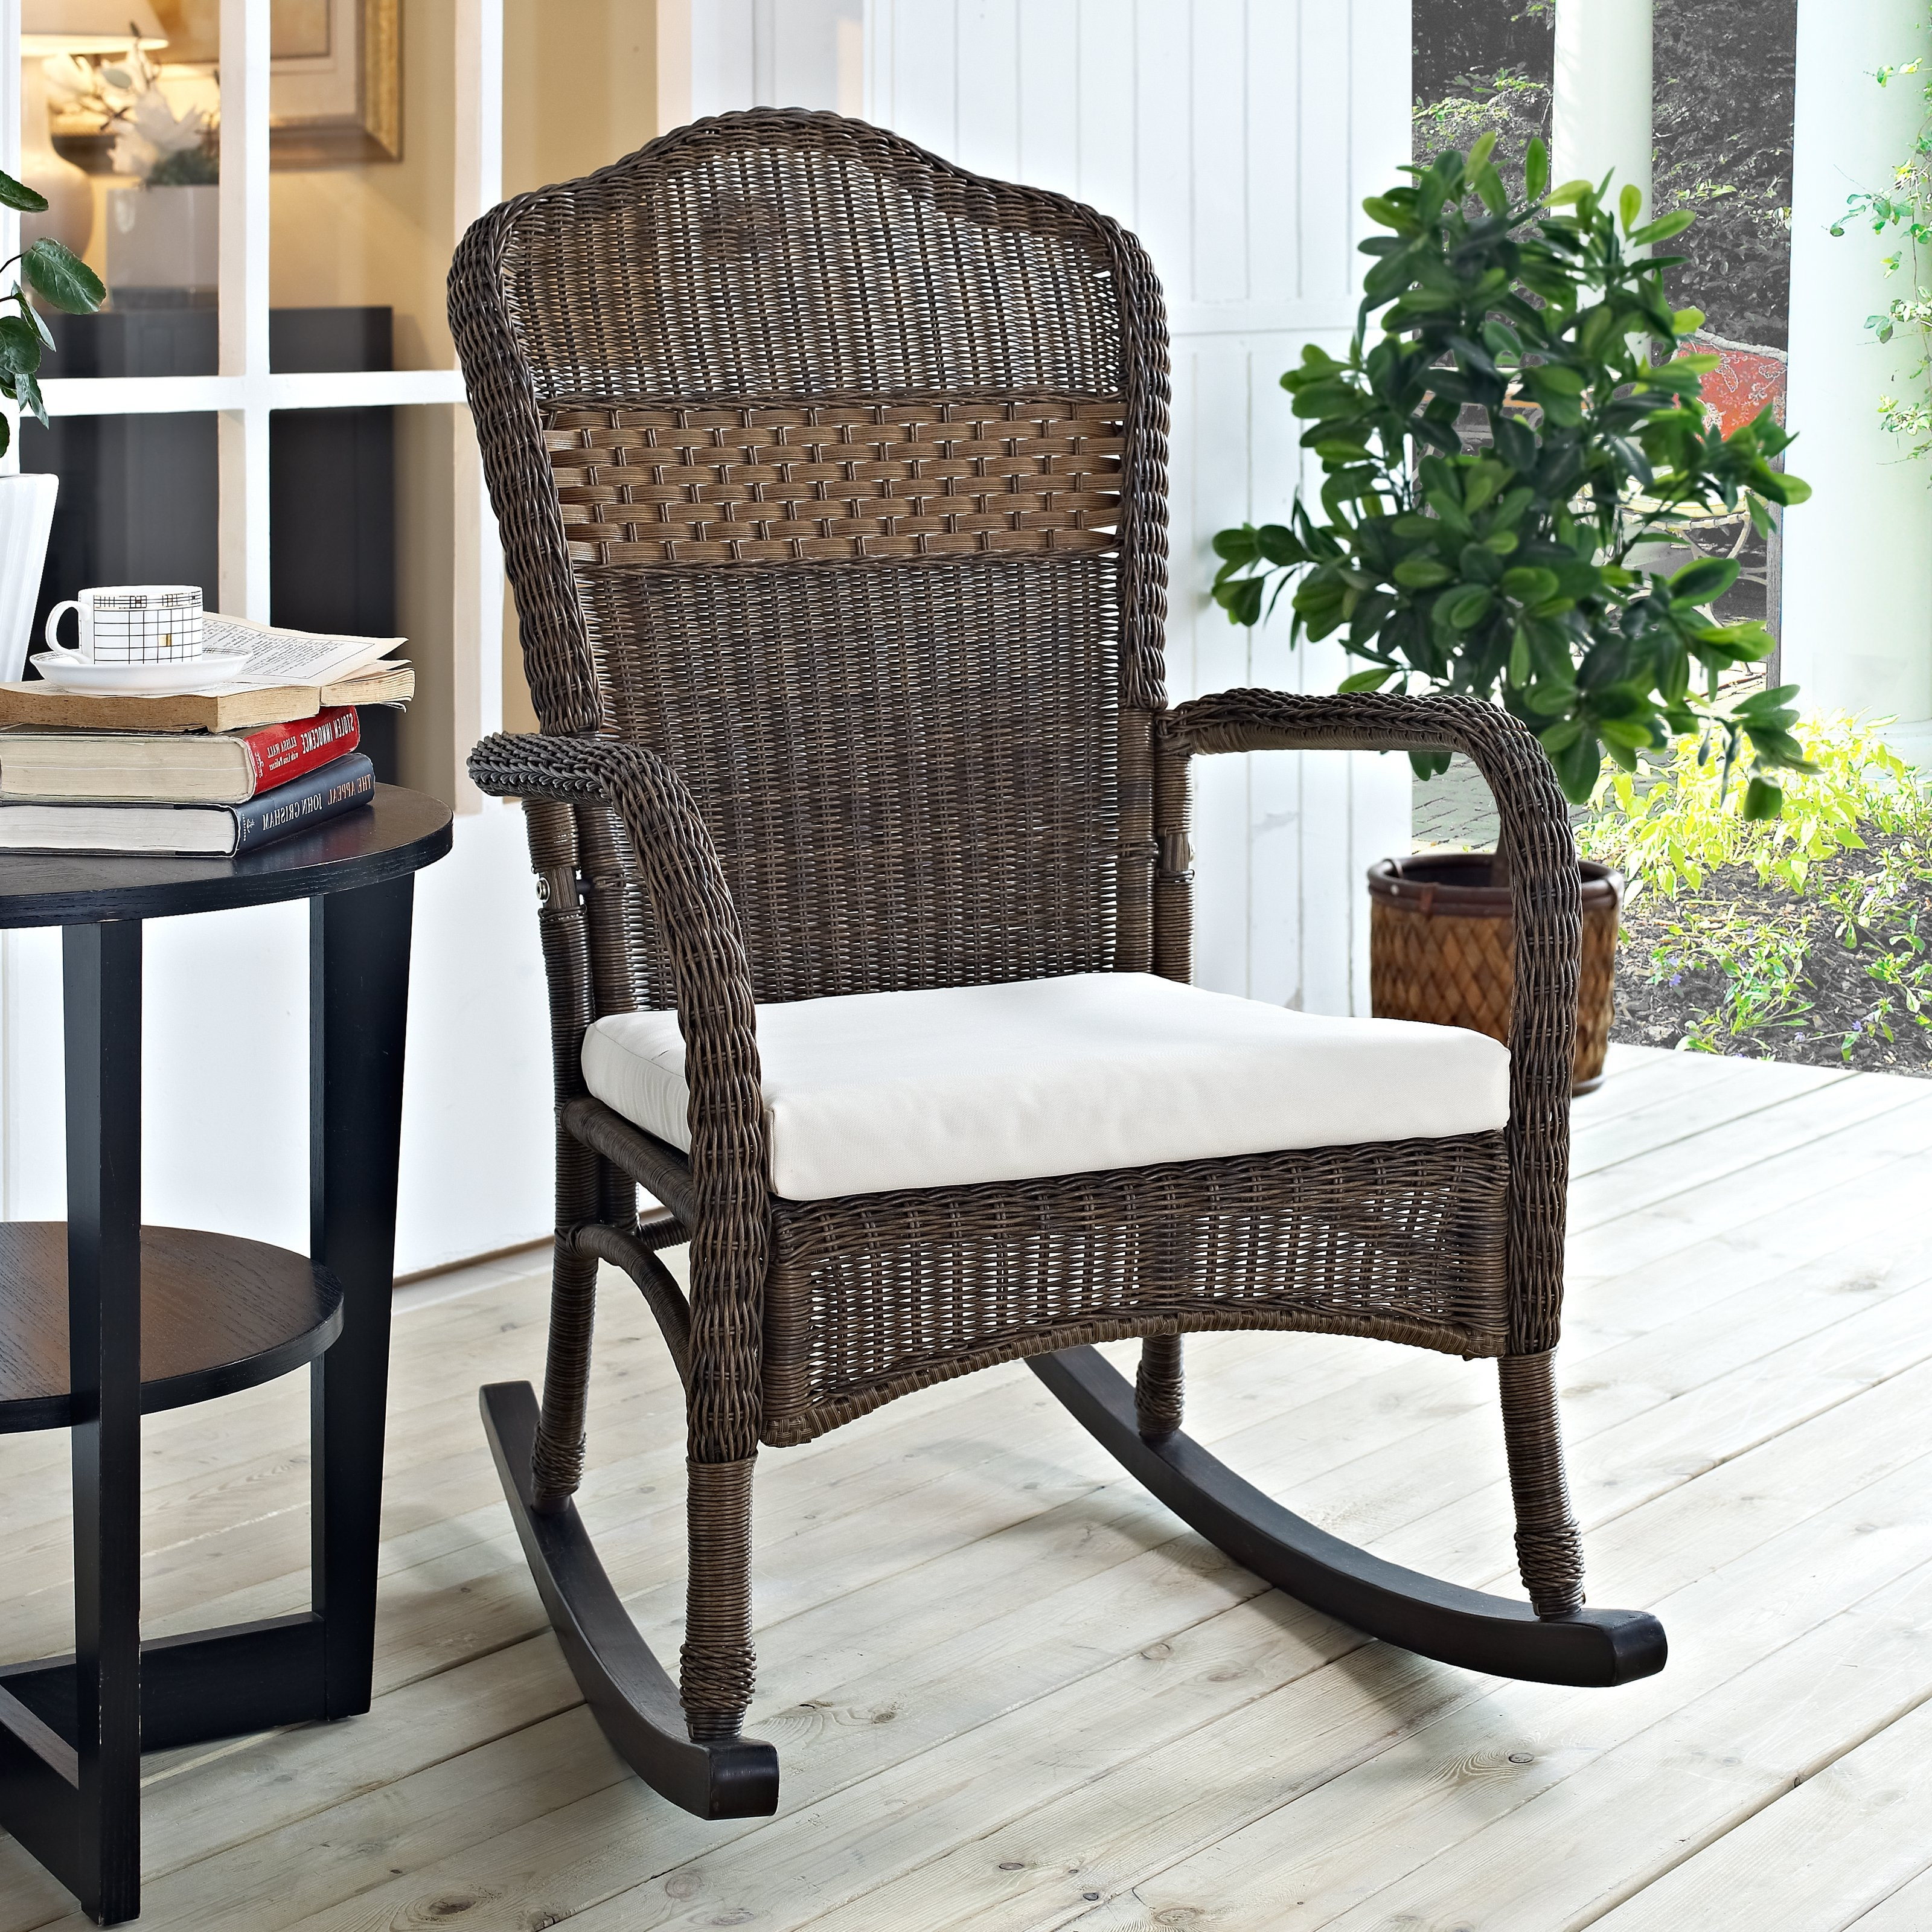 Brown Wicker Patio Rocking Chairs Within Most Current Patio & Garden : Outdoor Rocking Chairs Design Home Design Albert (View 3 of 15)